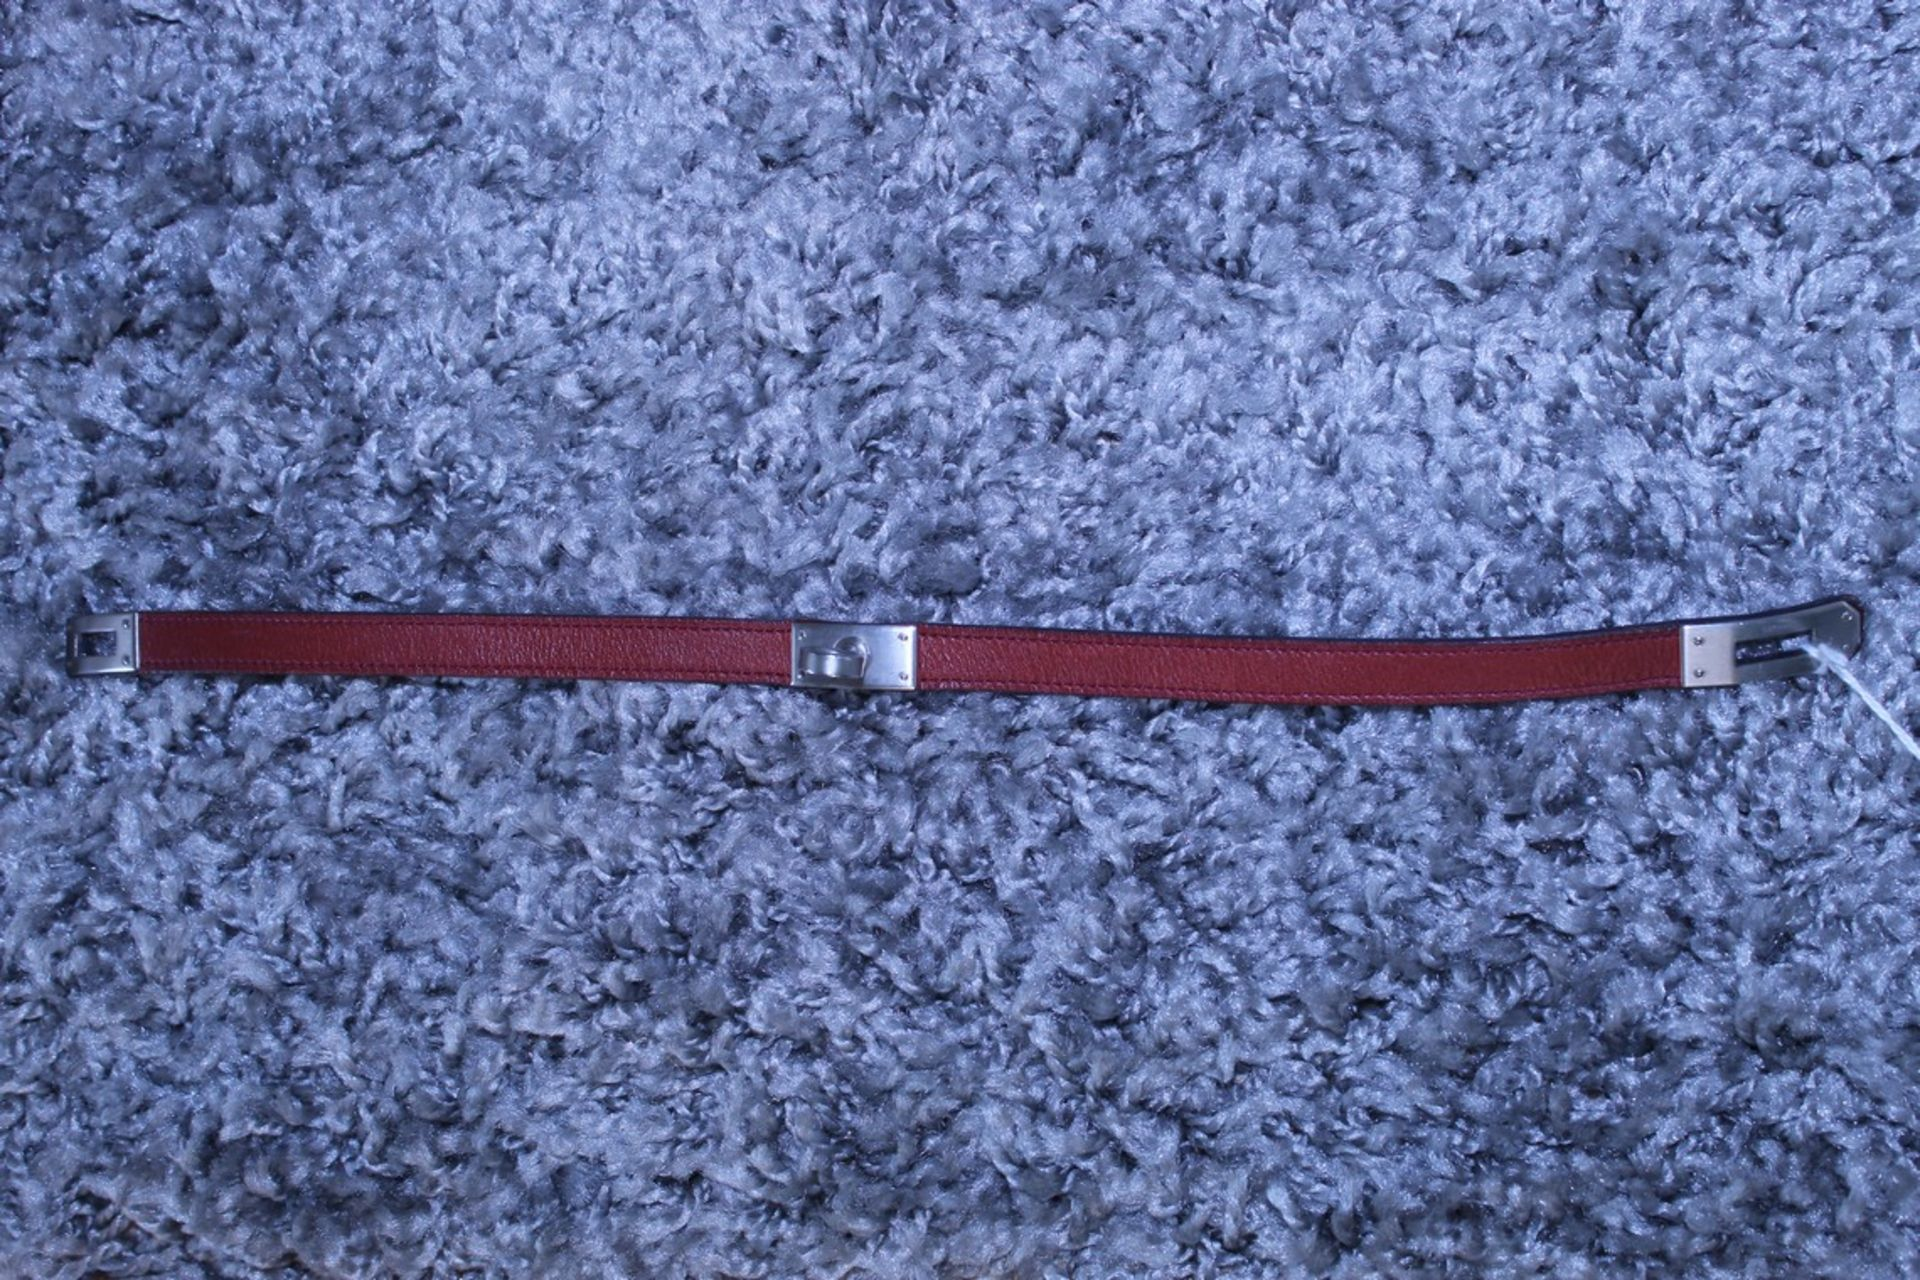 RRP £500 Hermes Kelly Bracelet, Leather Strap, Maroon, 15Cm, Condition Rating Ab (Aan0020) - Image 2 of 3